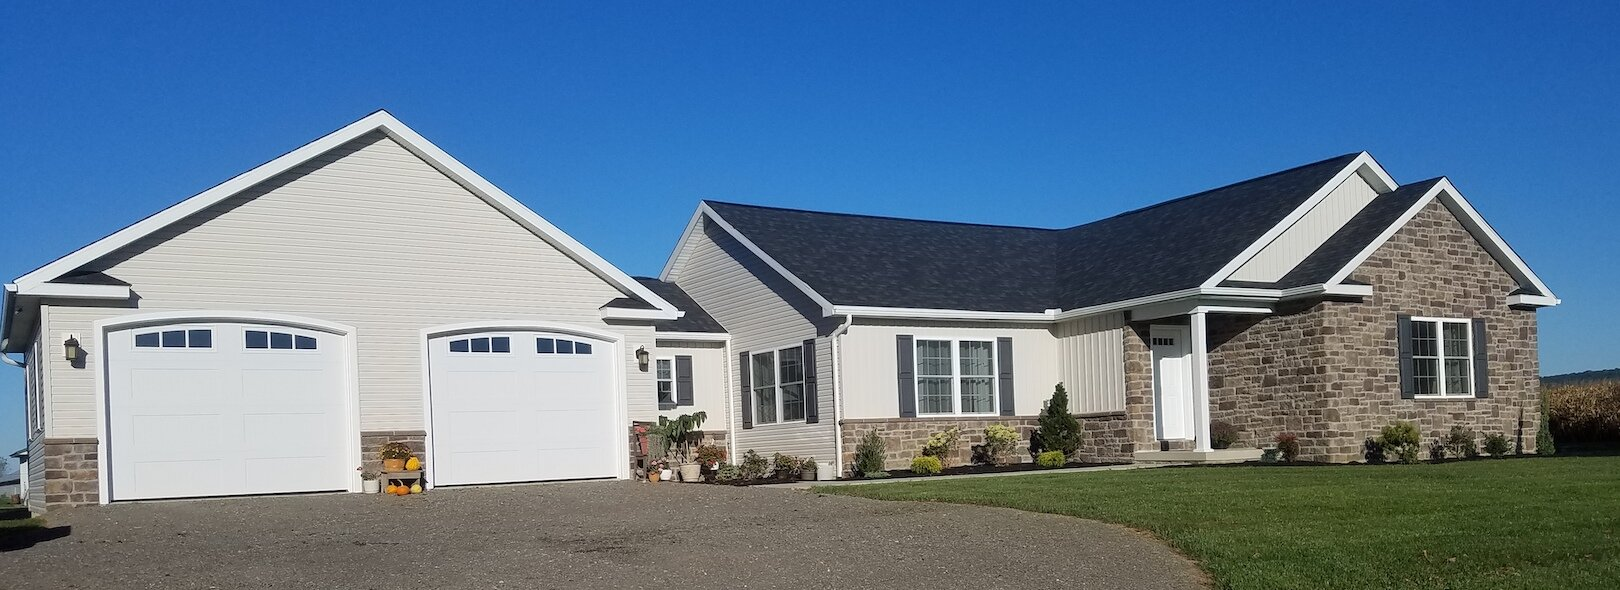 Pleasant Valley Homes on modular luxury homes, southern floor plans, modular ranch homes, house plans, modular log homes, modular home plans and gallery, american dream home plans, 4 bedroom modular home plans, townhouse floor plans, three bedroom floor plans, trailer floor plans, modular homes inside look, modular homes ohio, modular construction, simple ranch floor plans, manufactured housing floor plans, modular home plans and prices, orleans homes floor plans, modular homes craftsman bungalow,